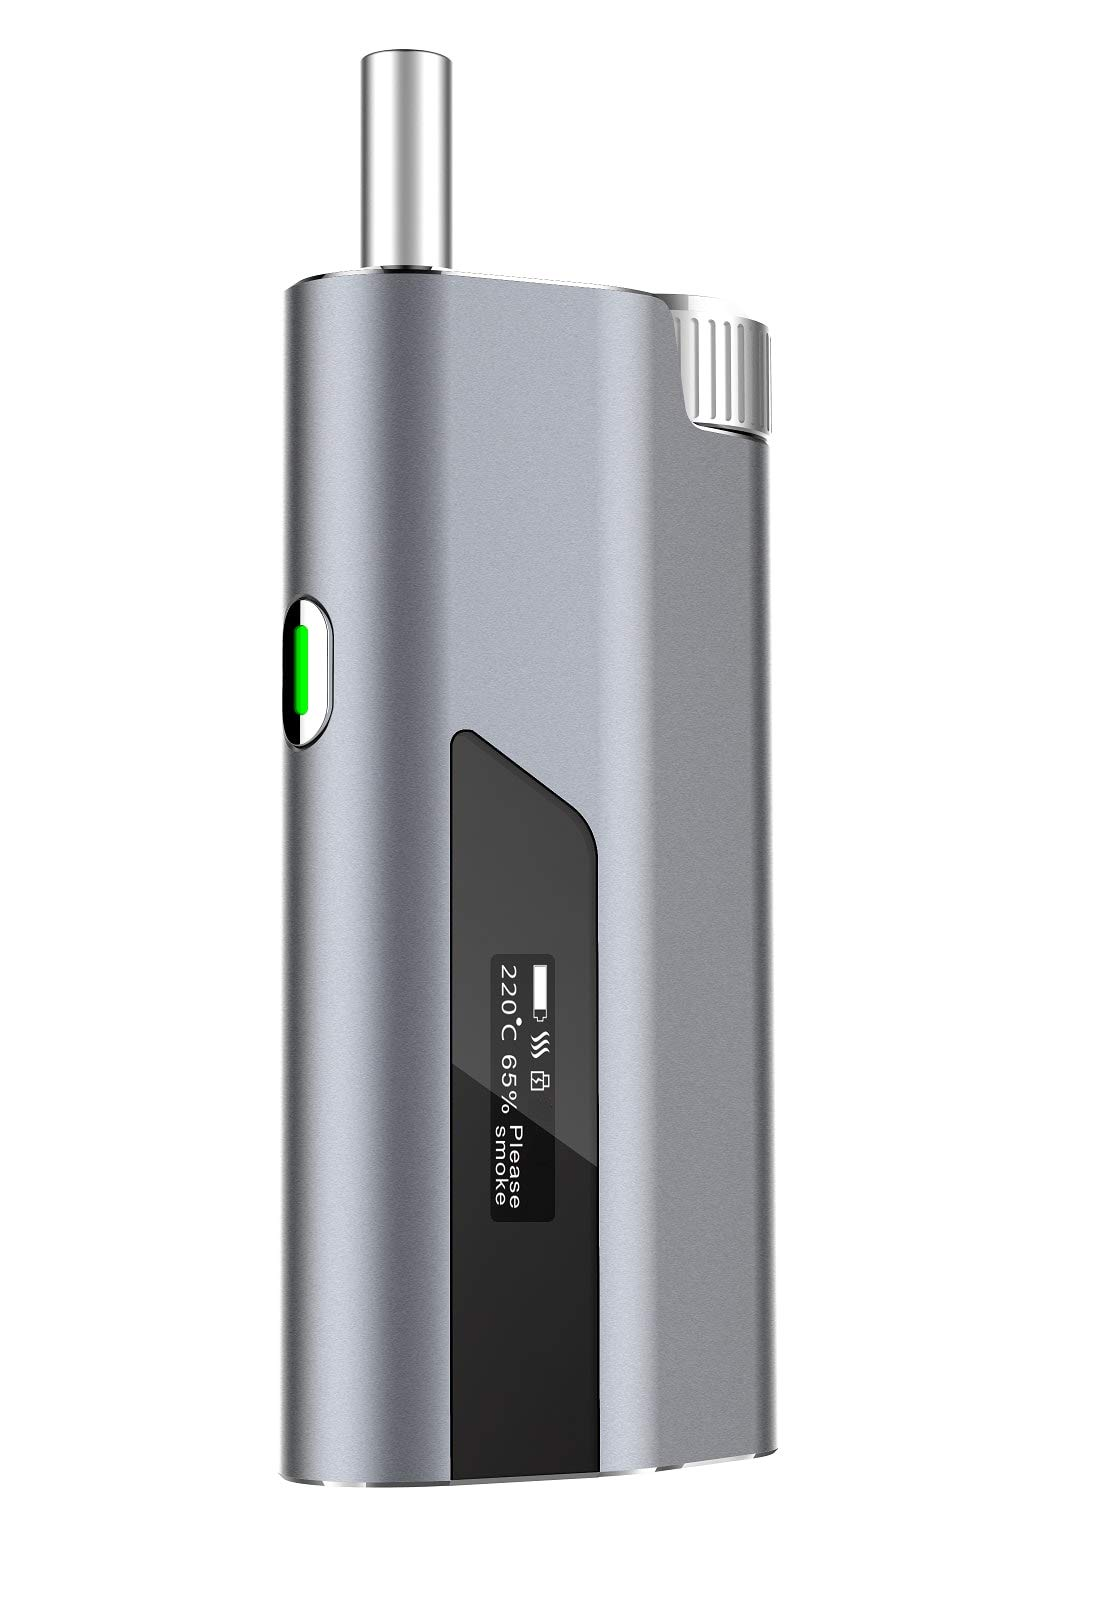 Smoke Your Regular Cigarettes with -74% Tar with THHIS - Hybrid Heat-Not-Burn System and Electronic Cigarette - Dark Grey